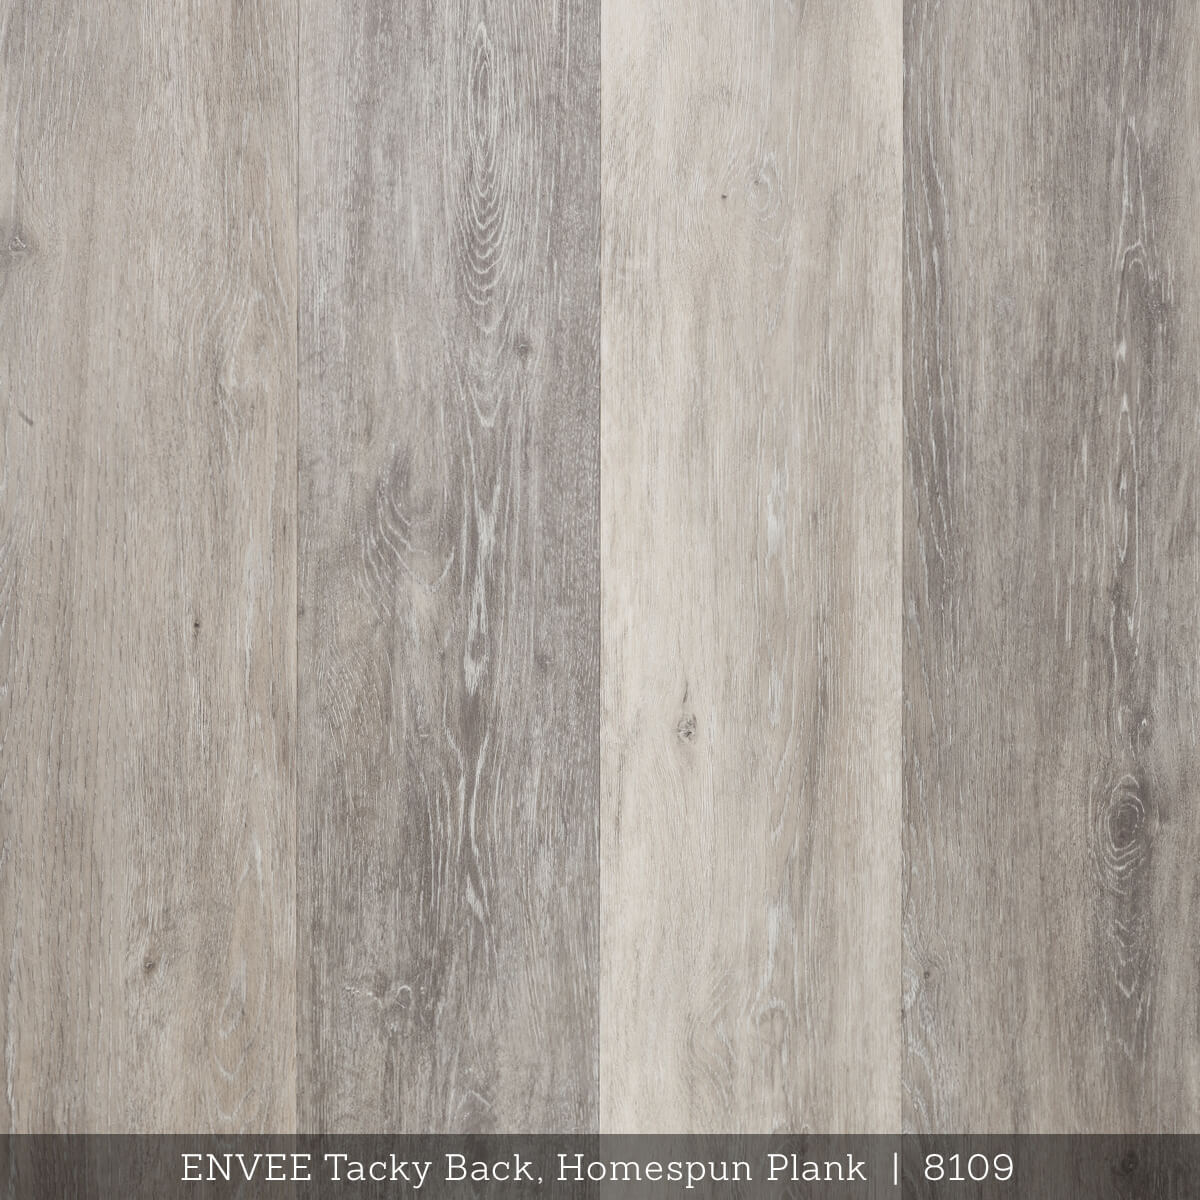 Envee Tacky Back, Homespun Plank